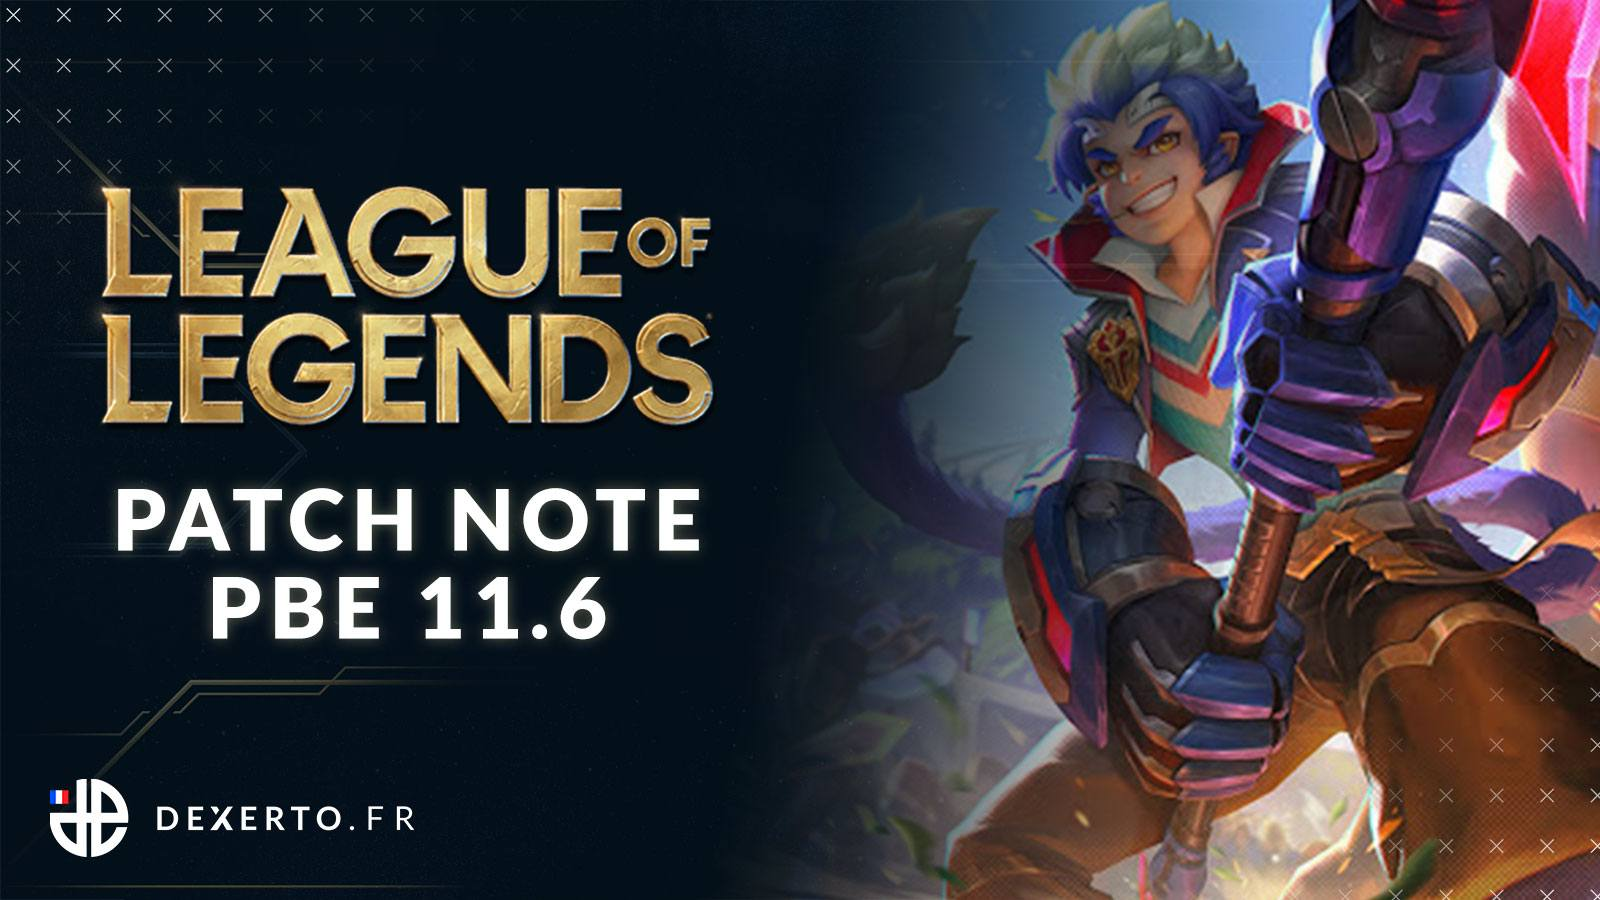 LoL Patch Note PBE 11.6